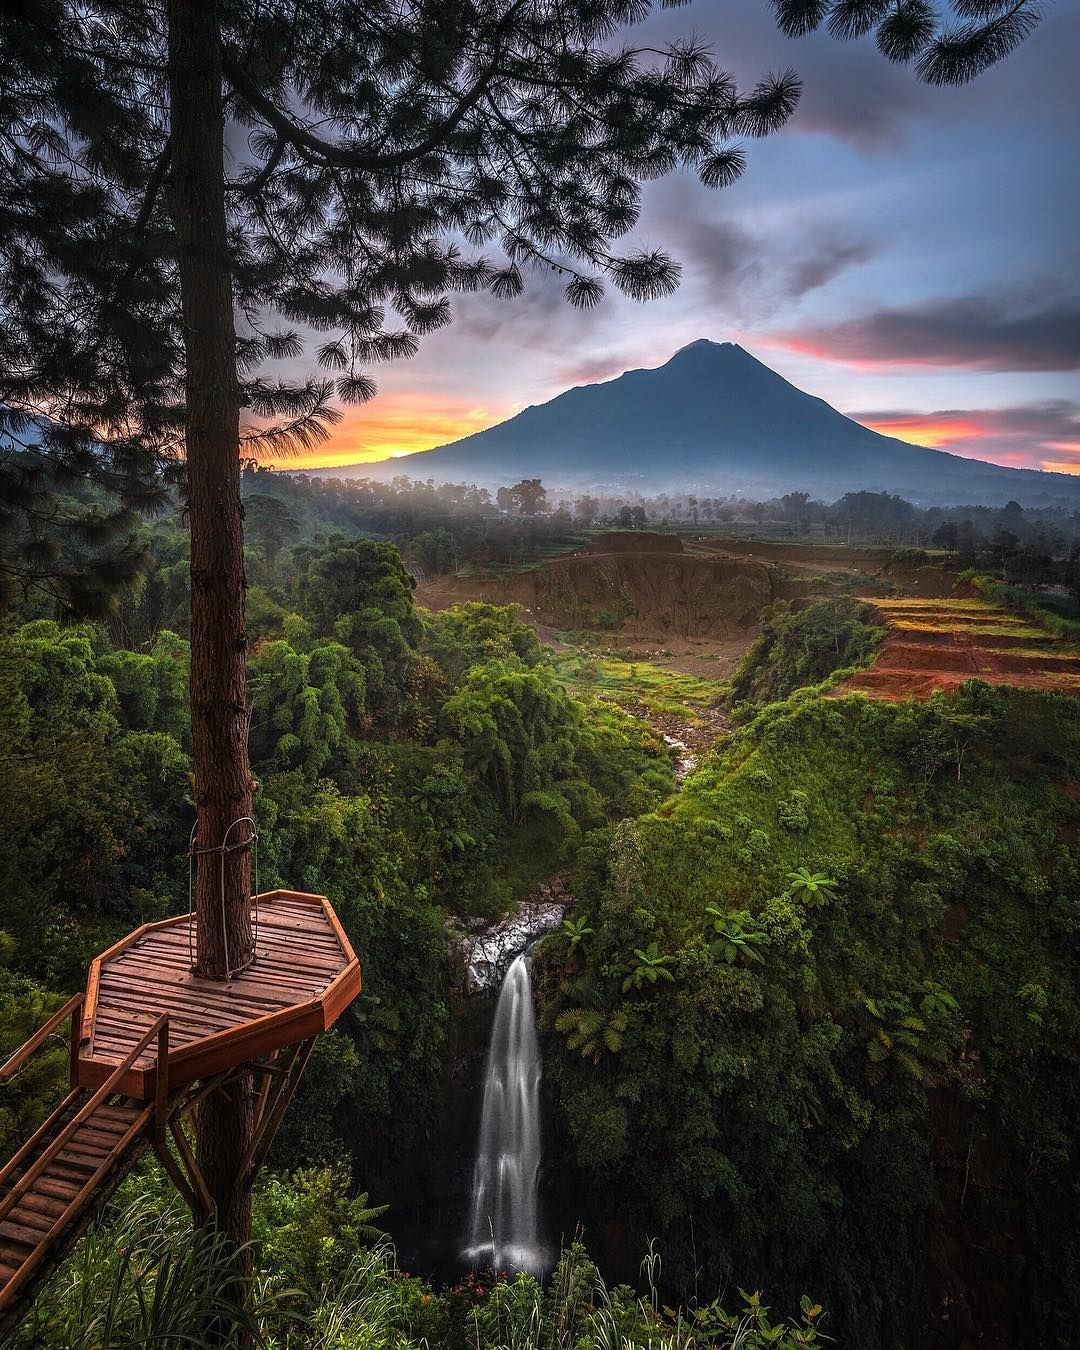 located in the tropical forest of Indonesia, kedung kayang